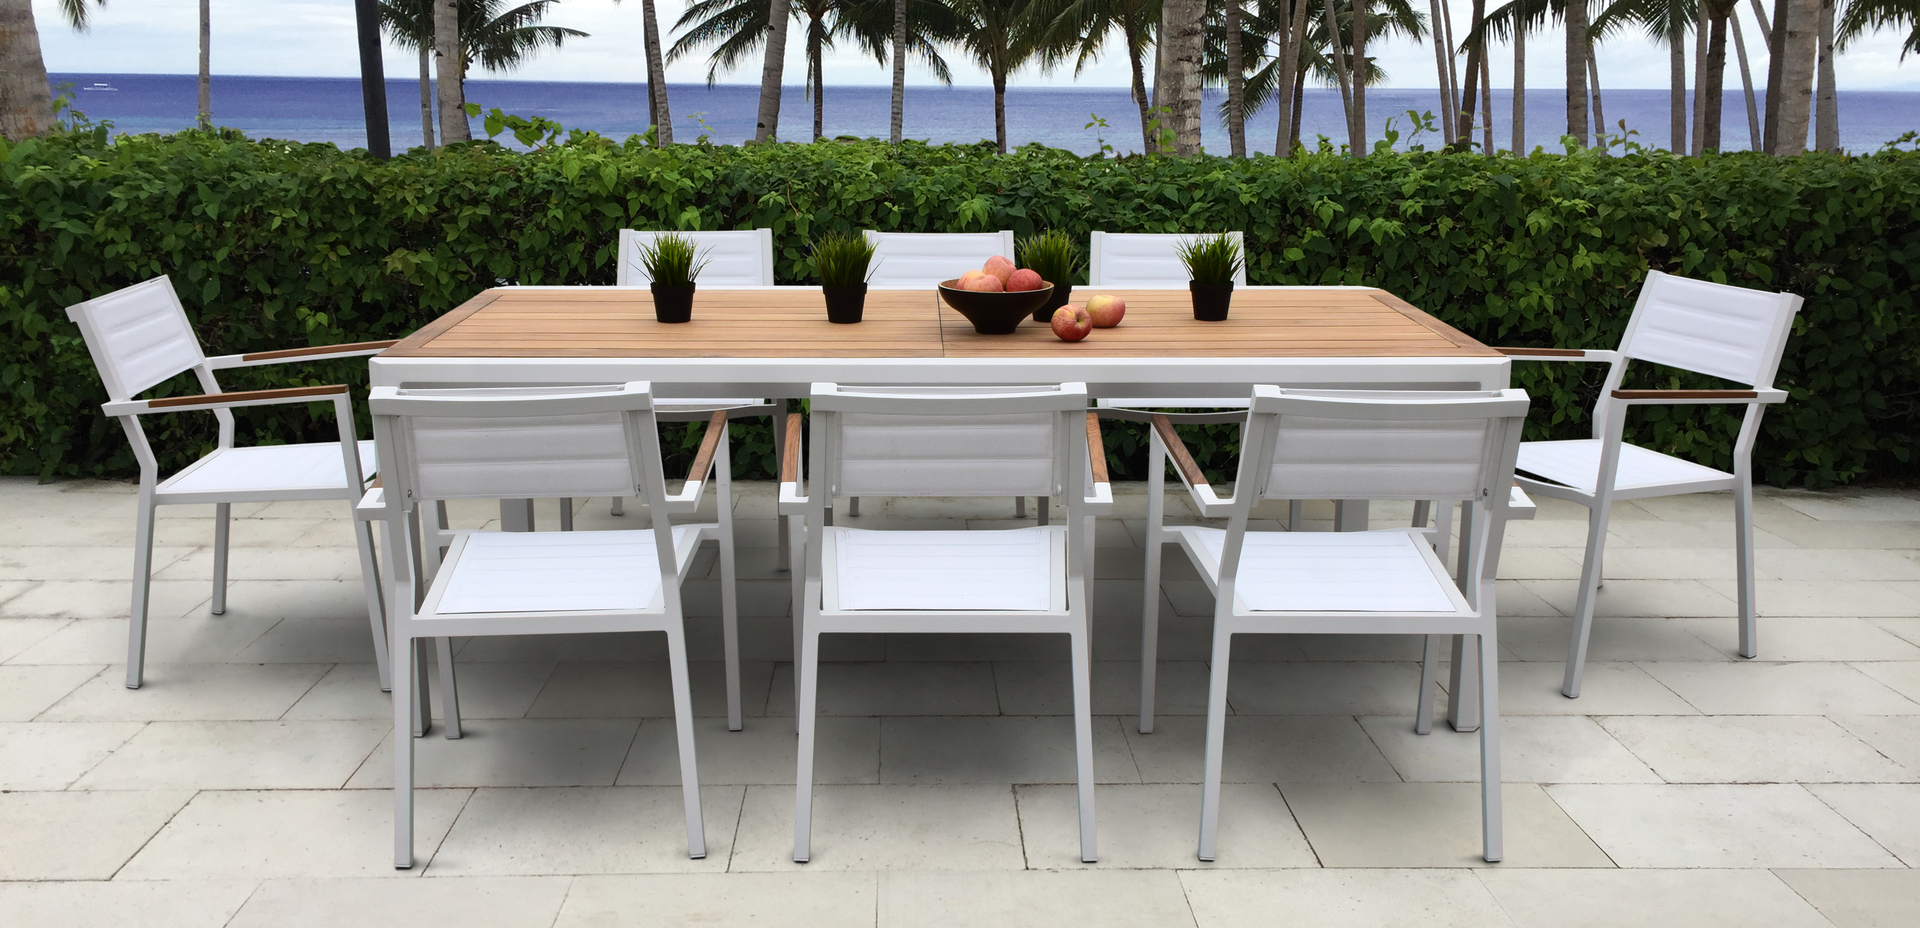 Modern Aluminum Patio Furniture ab modern collections, cast aluminum patio furniture, outdoor